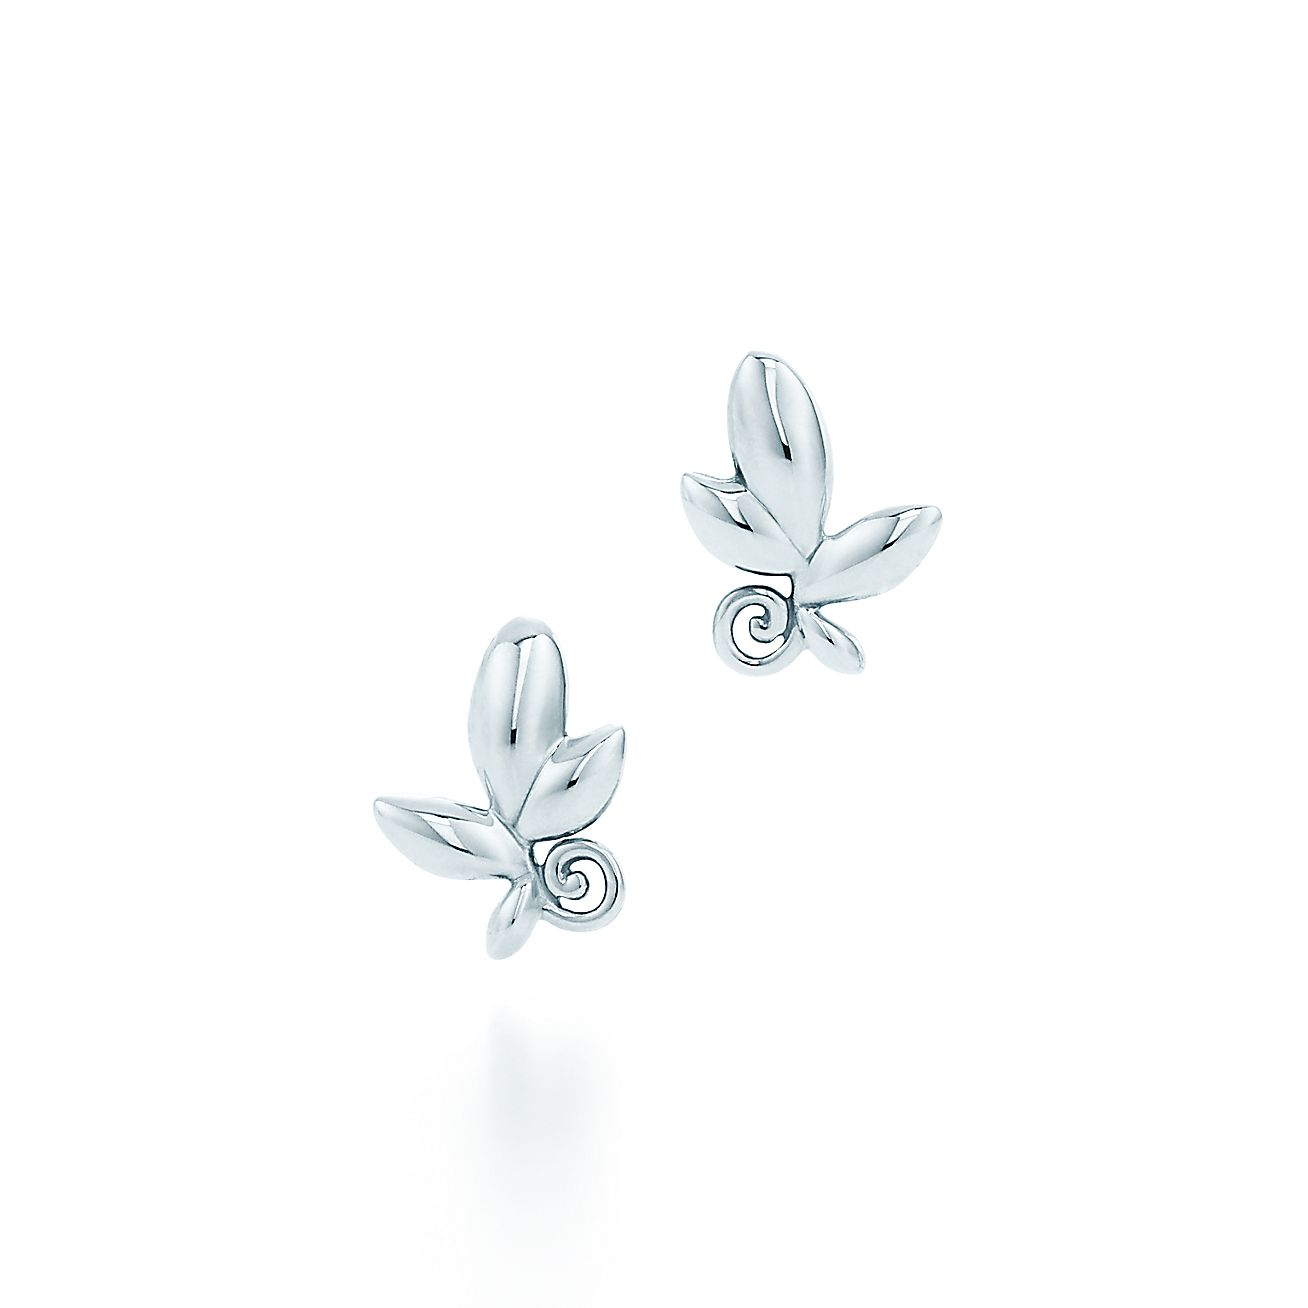 Paloma Picasso® Olive Leaf Earrings In Sterling Silver  Tiffany & Co